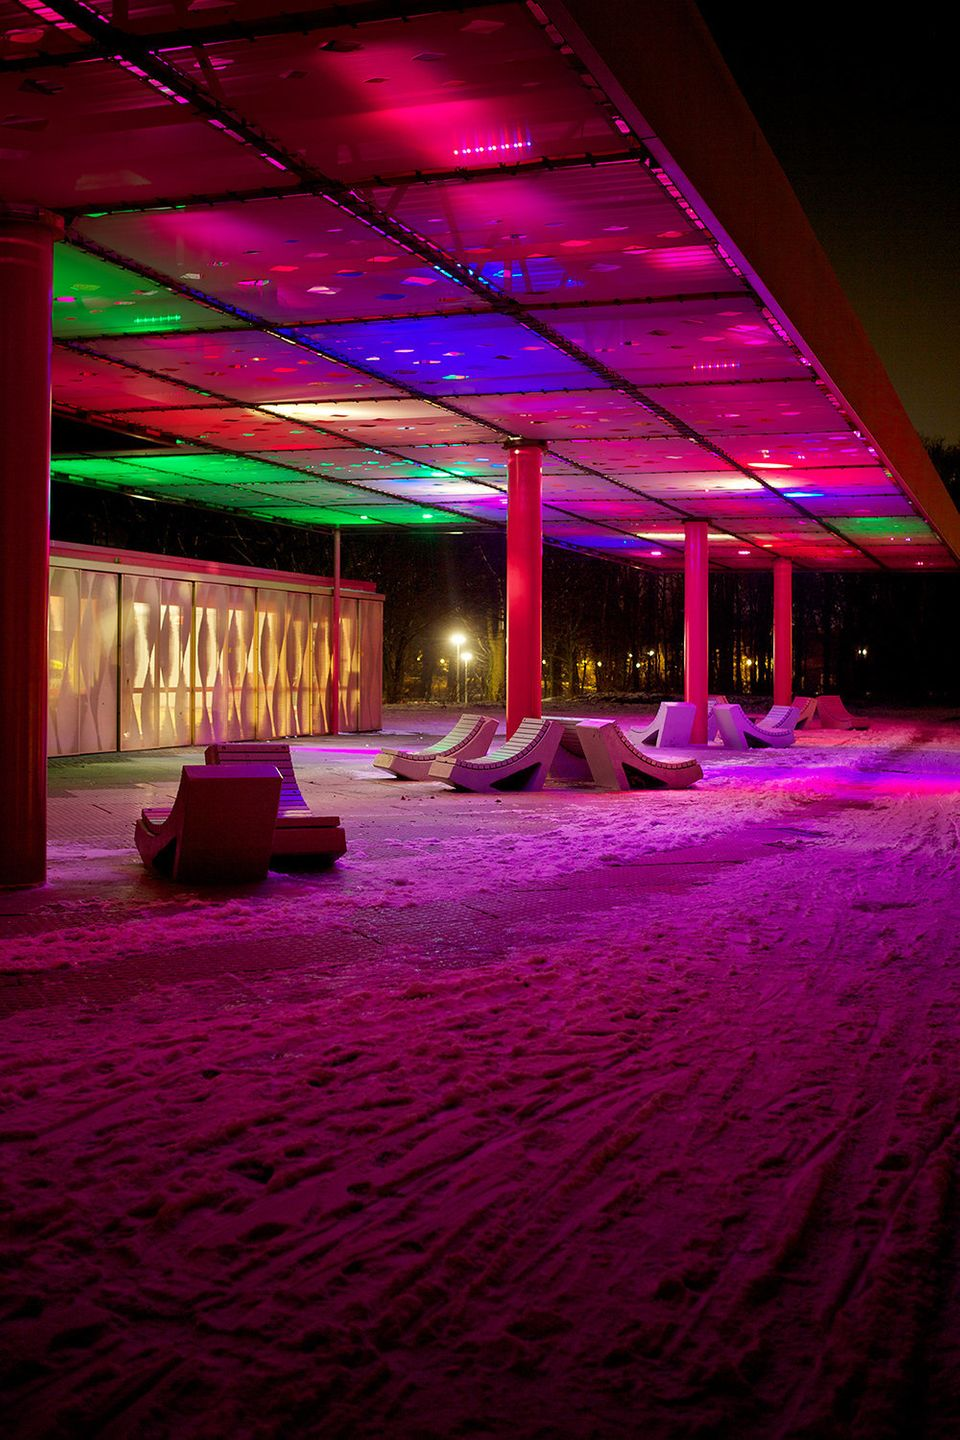 Sophie Valla's LED Cloud installation